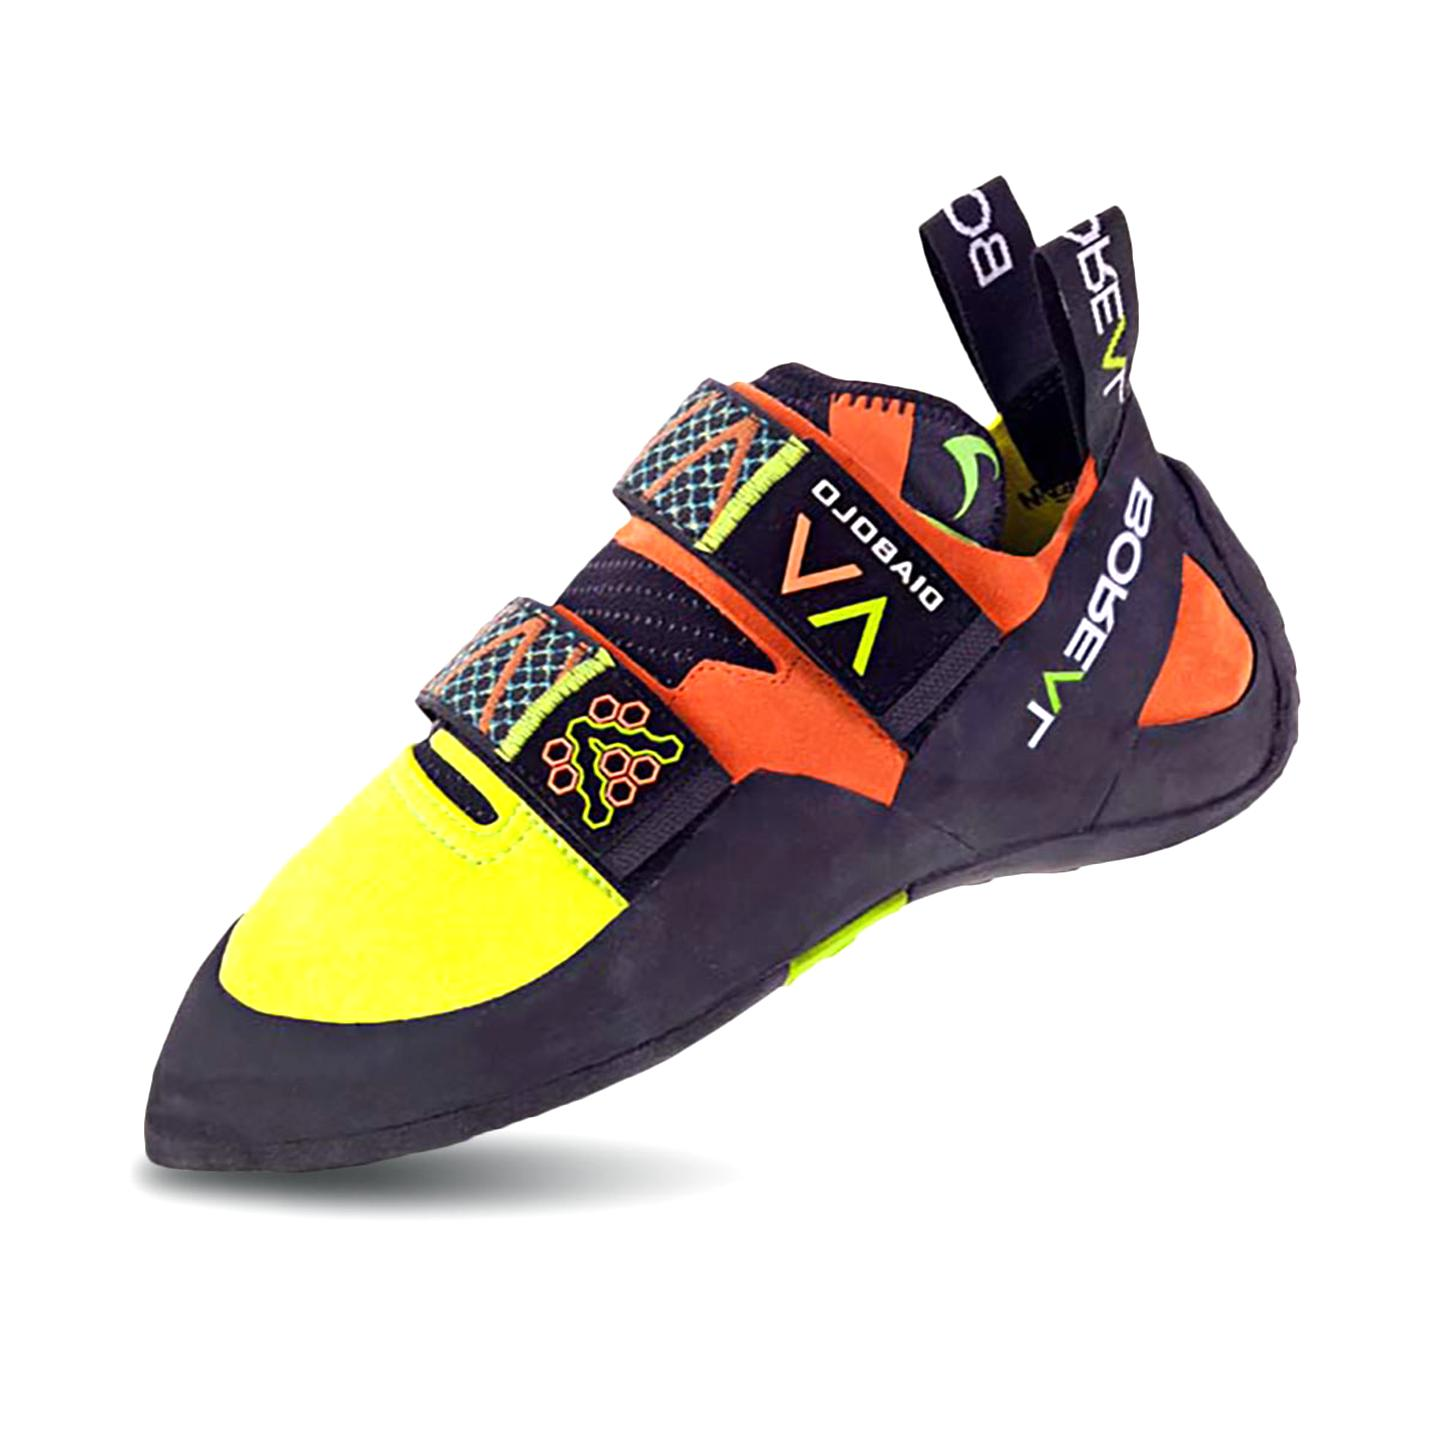 look good shoes sale various design superior quality Boreal Climbing Shoes for sale | Only 4 left at -70%